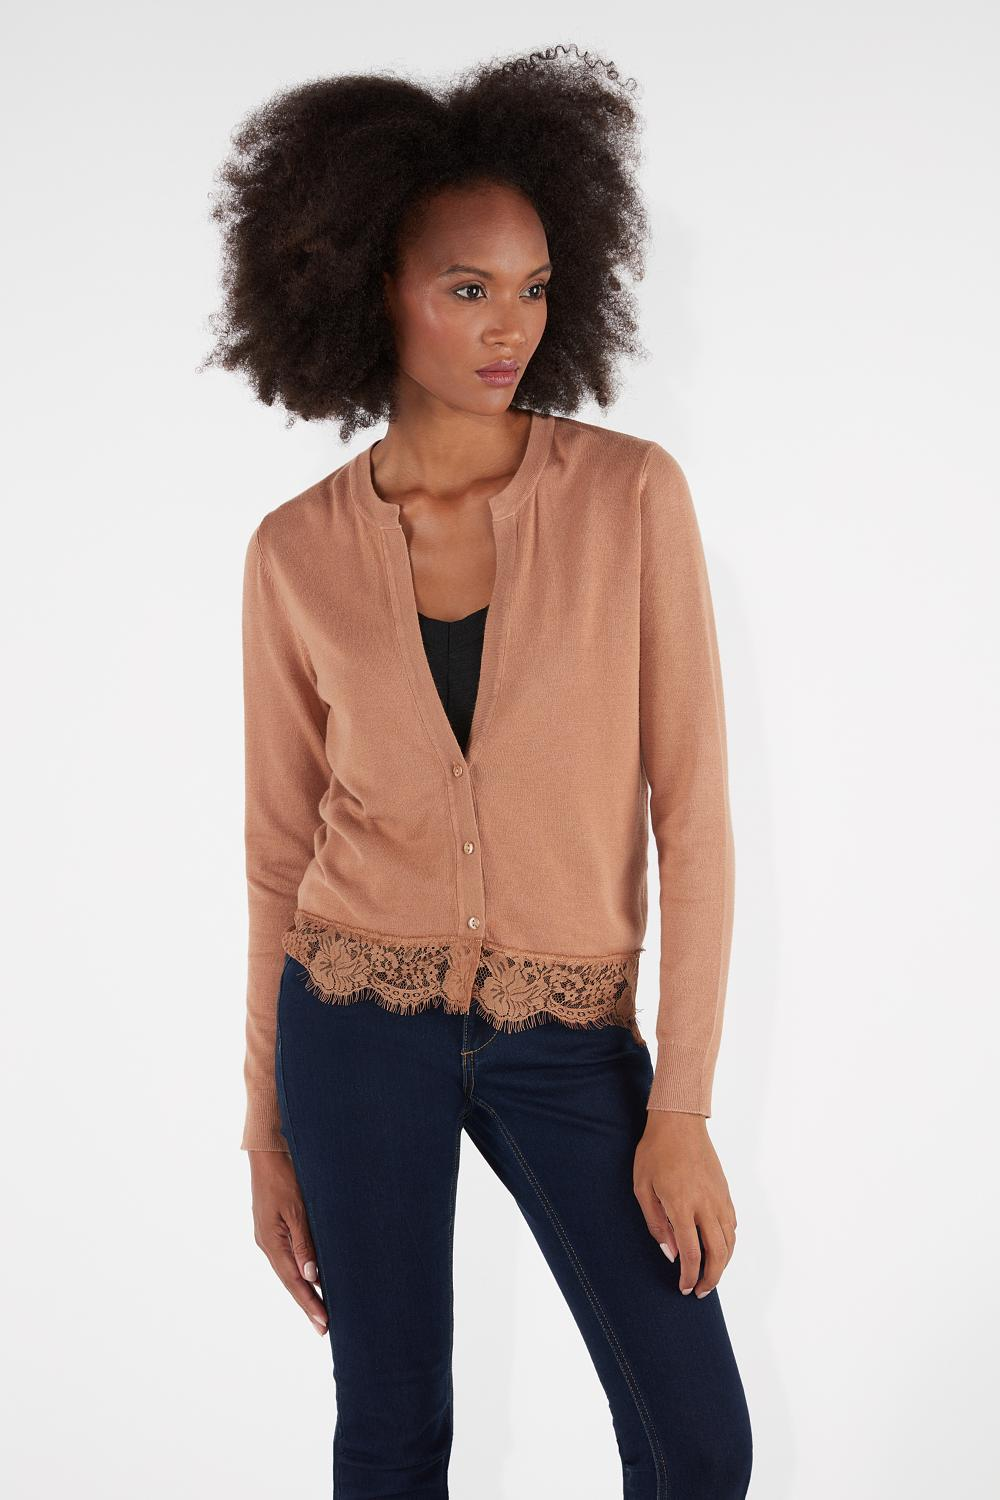 Long-Sleeved Short Cardigan with Lace Insert